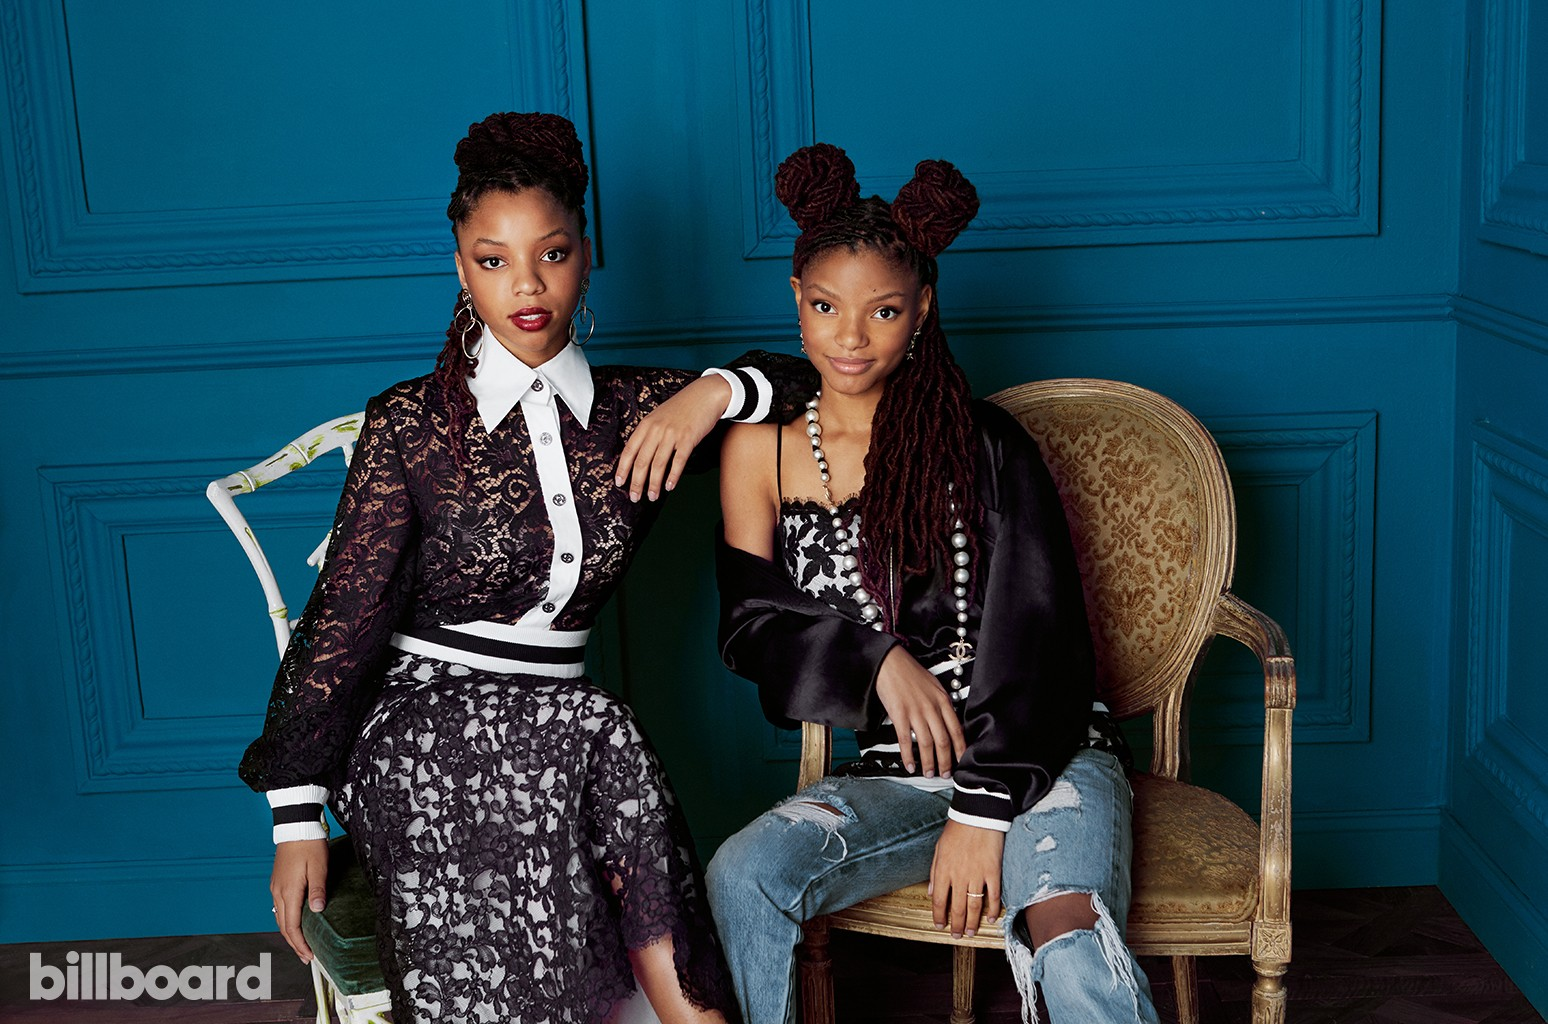 Chloe X Halle   photographed backstage at the 2016 Women in Music awards on December 9th at Pier 36 in New York City.